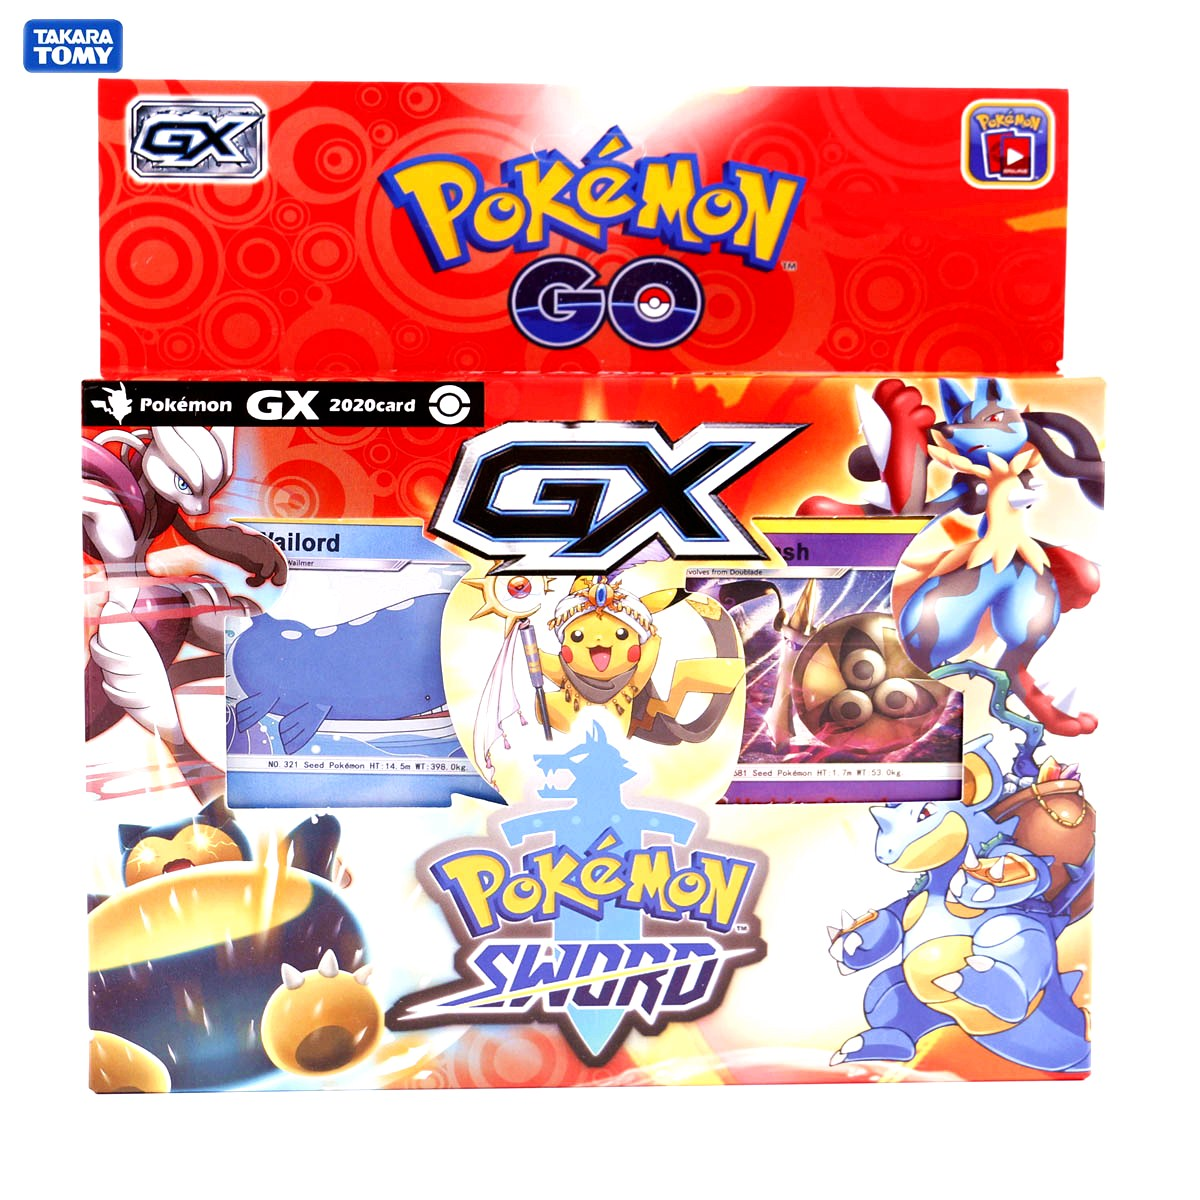 TOMY Pokemon 2020 Latest 54 Card Solitaire Pokemon Card Sword And Shield Box Trading Card Game Kids Collection Toys Gift